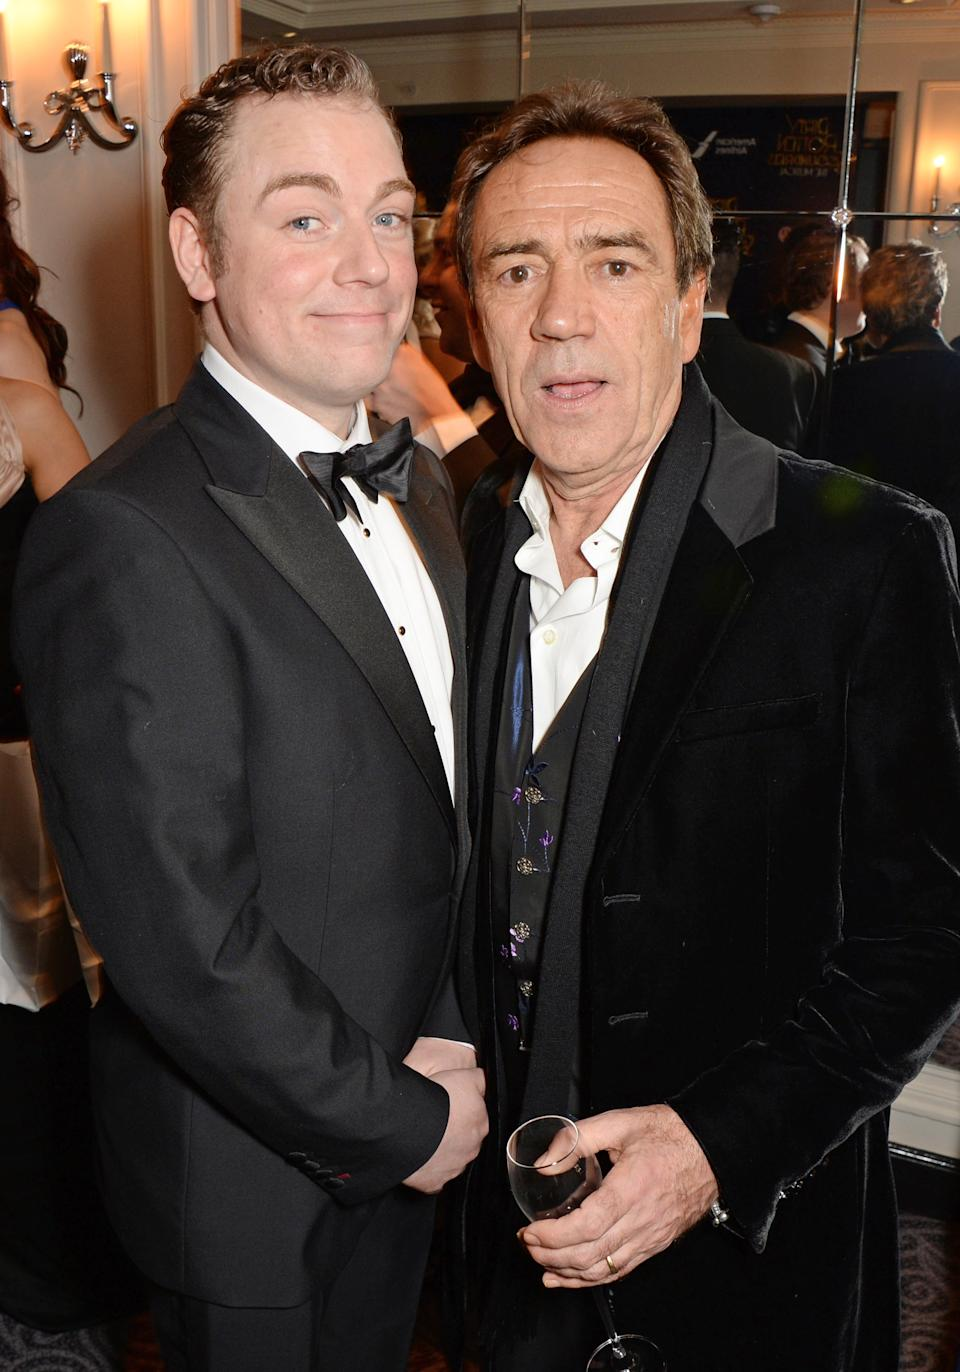 """LONDON, ENGLAND - APRIL 02: Rufus Hound (L) and Robert Lindsay attend an after party following the press night performance of """"Dirty Rotten Scoundrels"""" at The Savoy Hotel on April 2, 2014 in London, England. (Photo by David M. Benett/Getty Images)"""